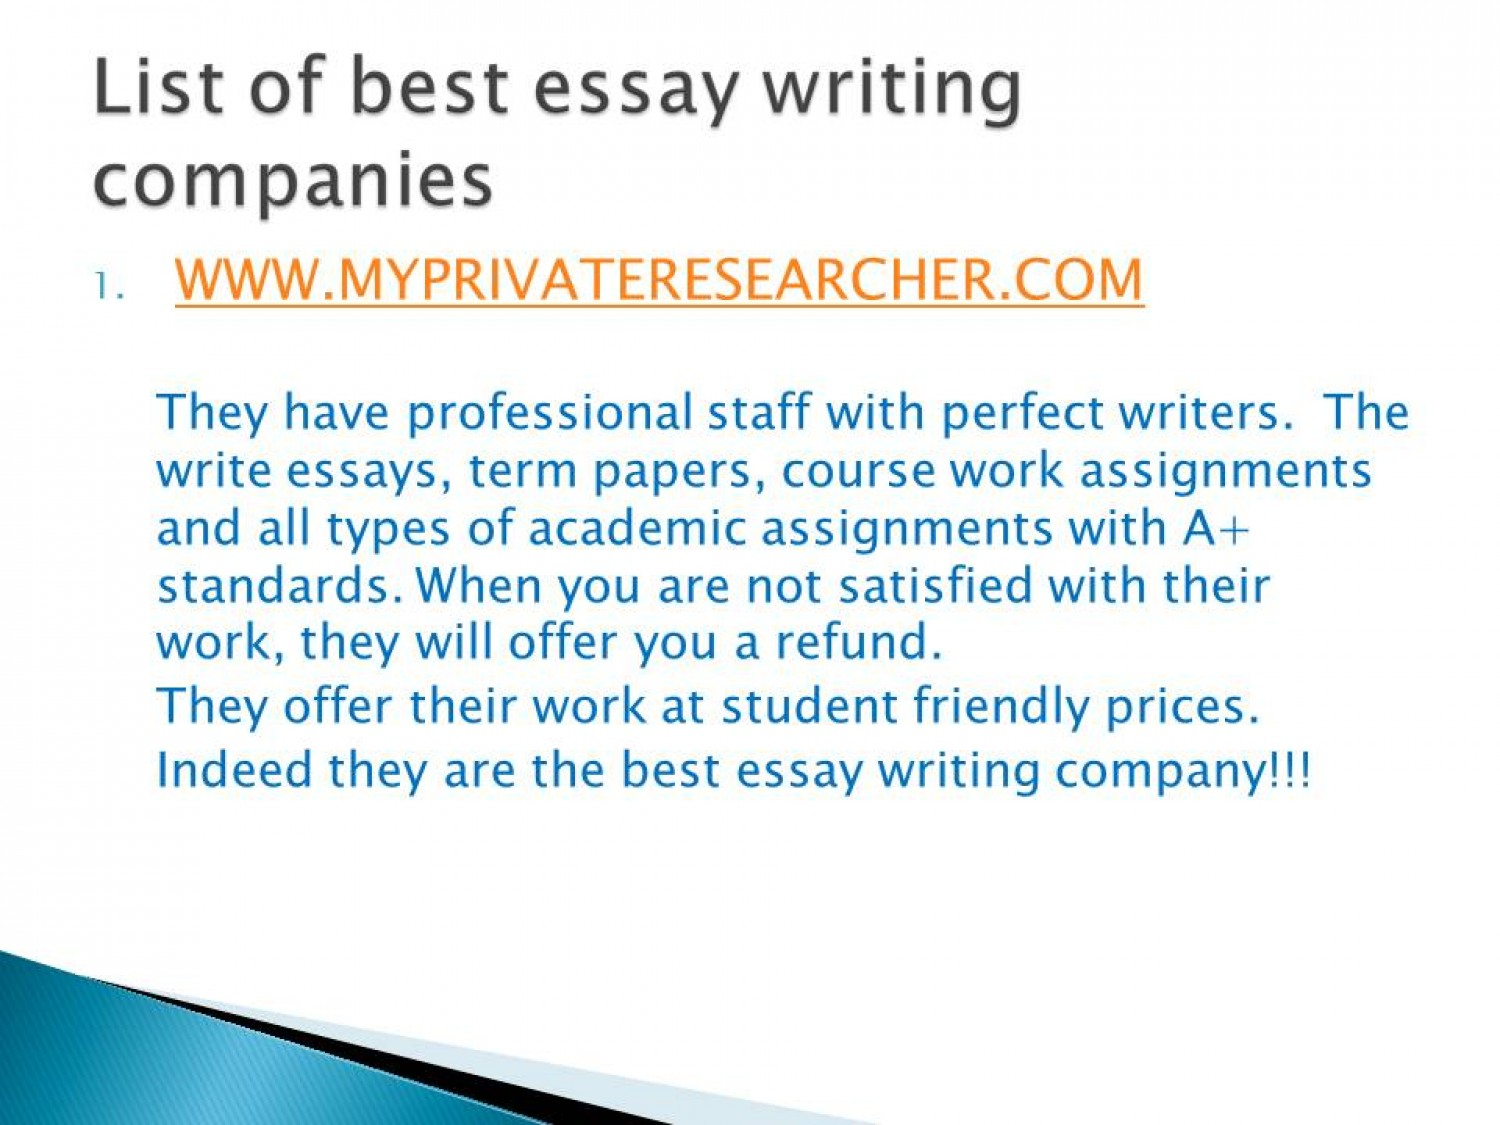 018 Essay Example Best Writing Companies 55eda1f2724ac W1500 Frightening Company In Interview Help Illegal Full